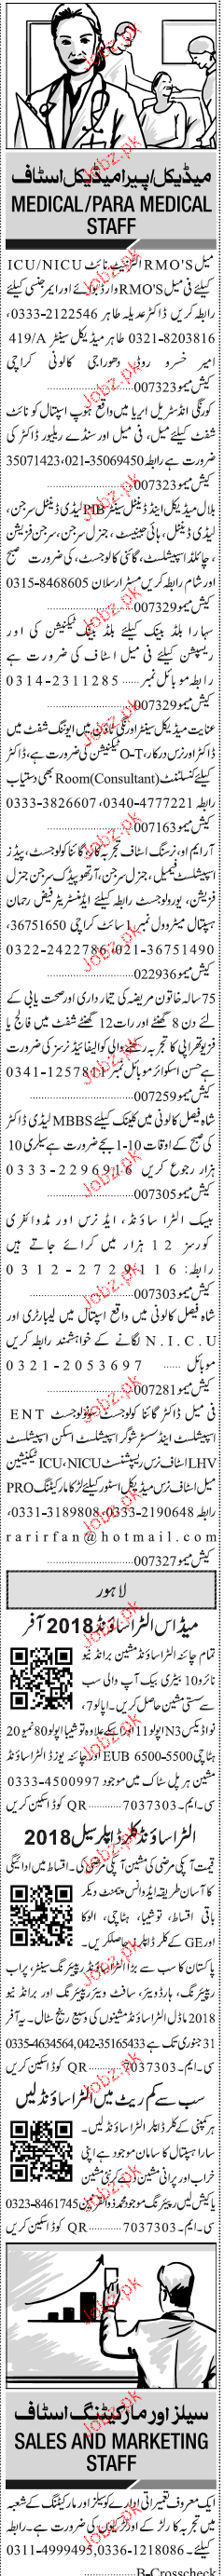 Medical Officers, Lady Dental Surgeons Job Opportunity